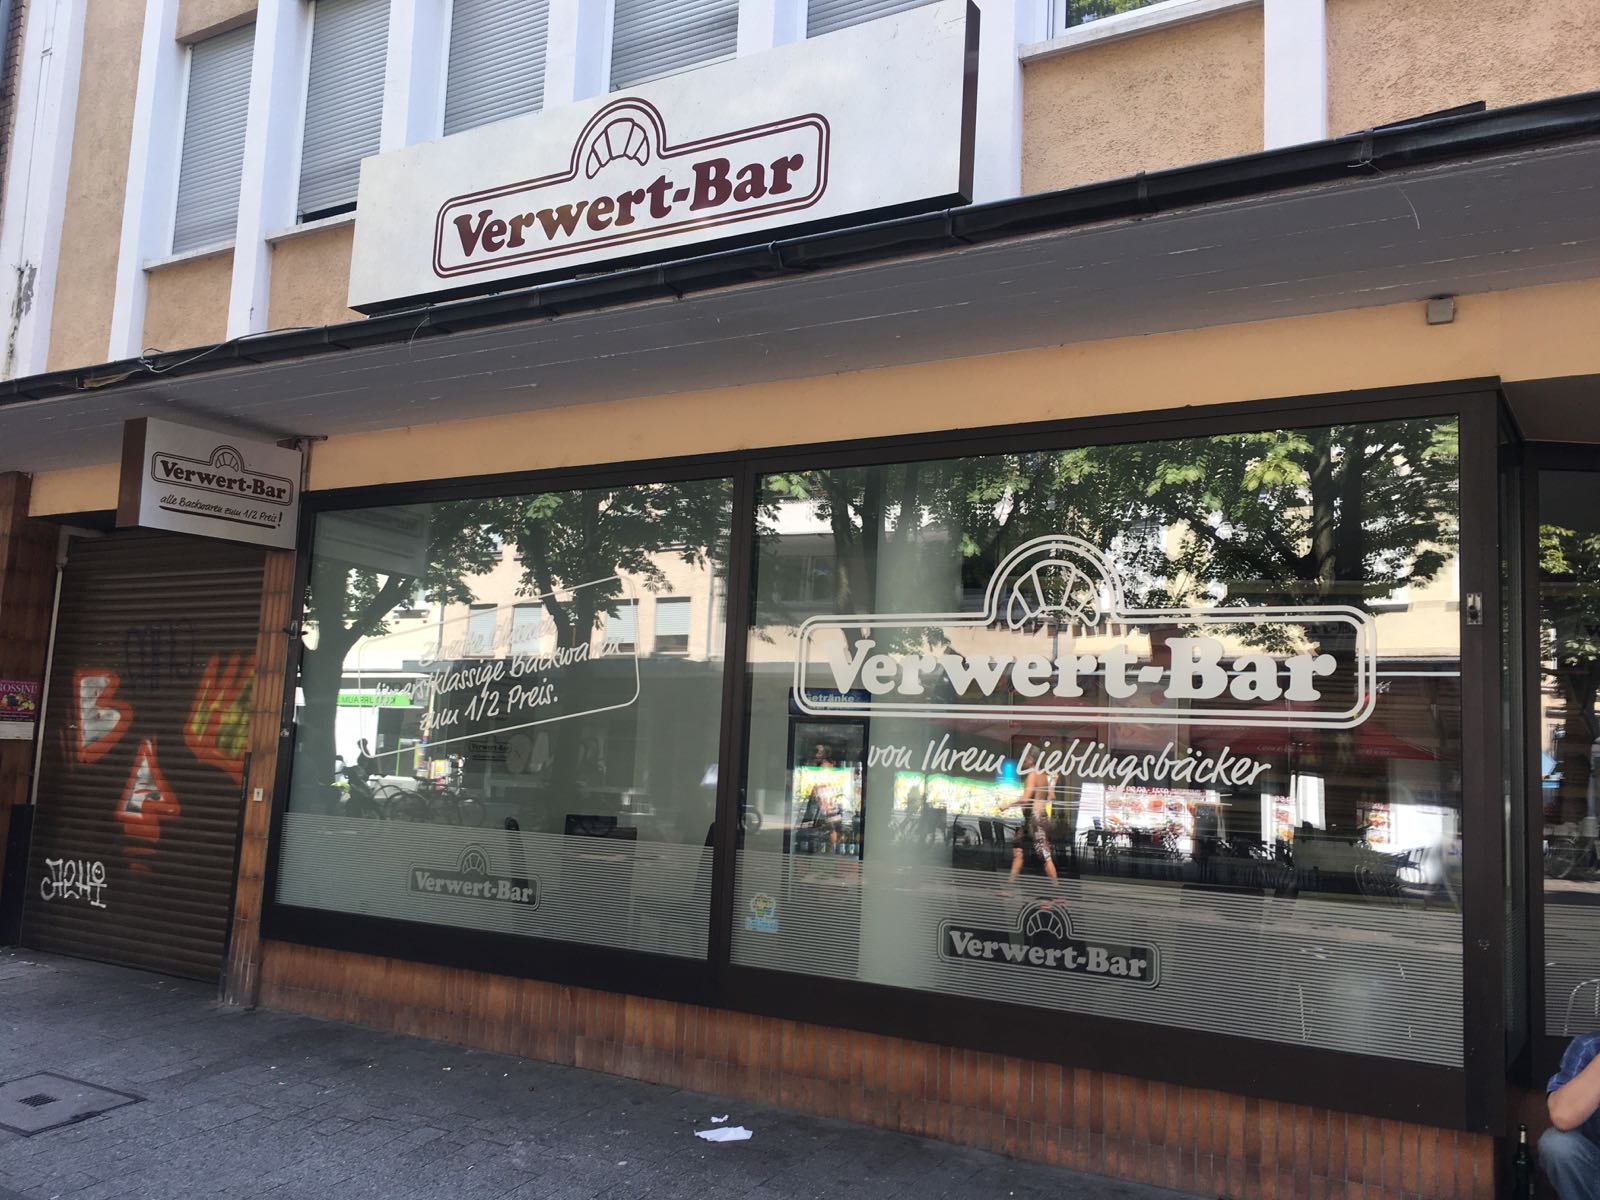 Verwert-Bar – Backwaren